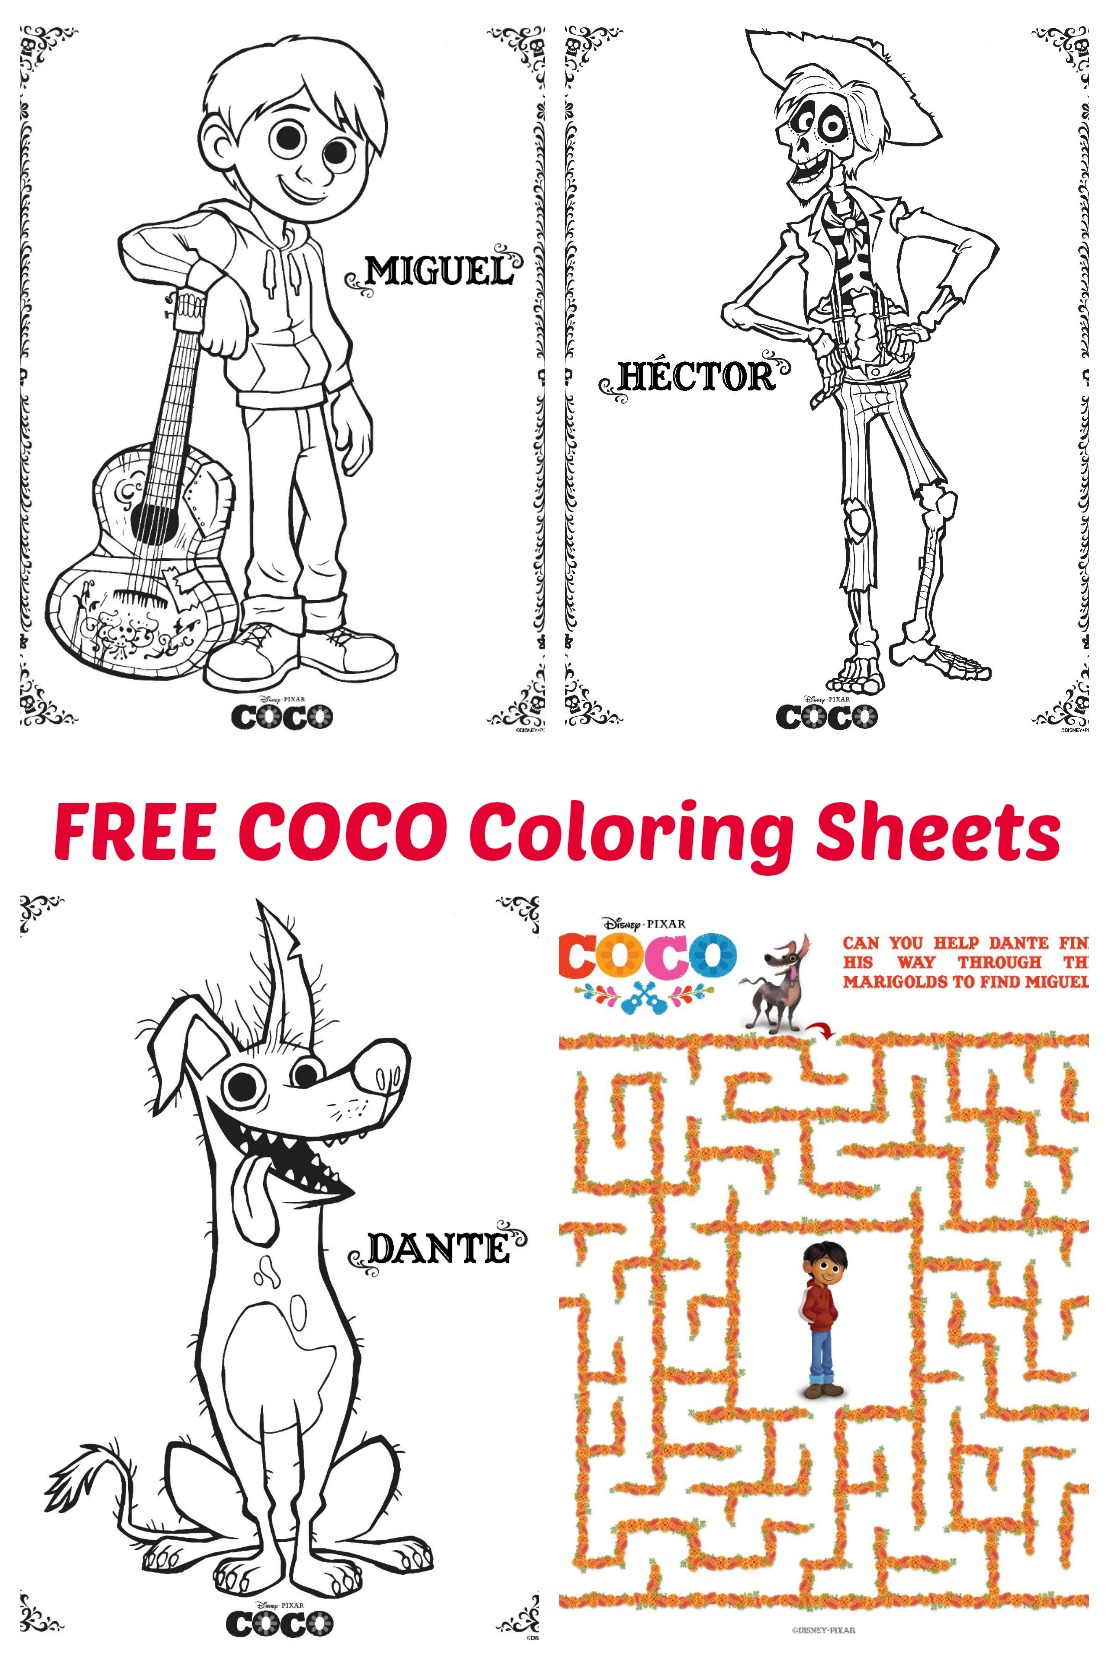 Pixar Coco Coloring Sheets Pixarcocoevent Finding Sanity In Our